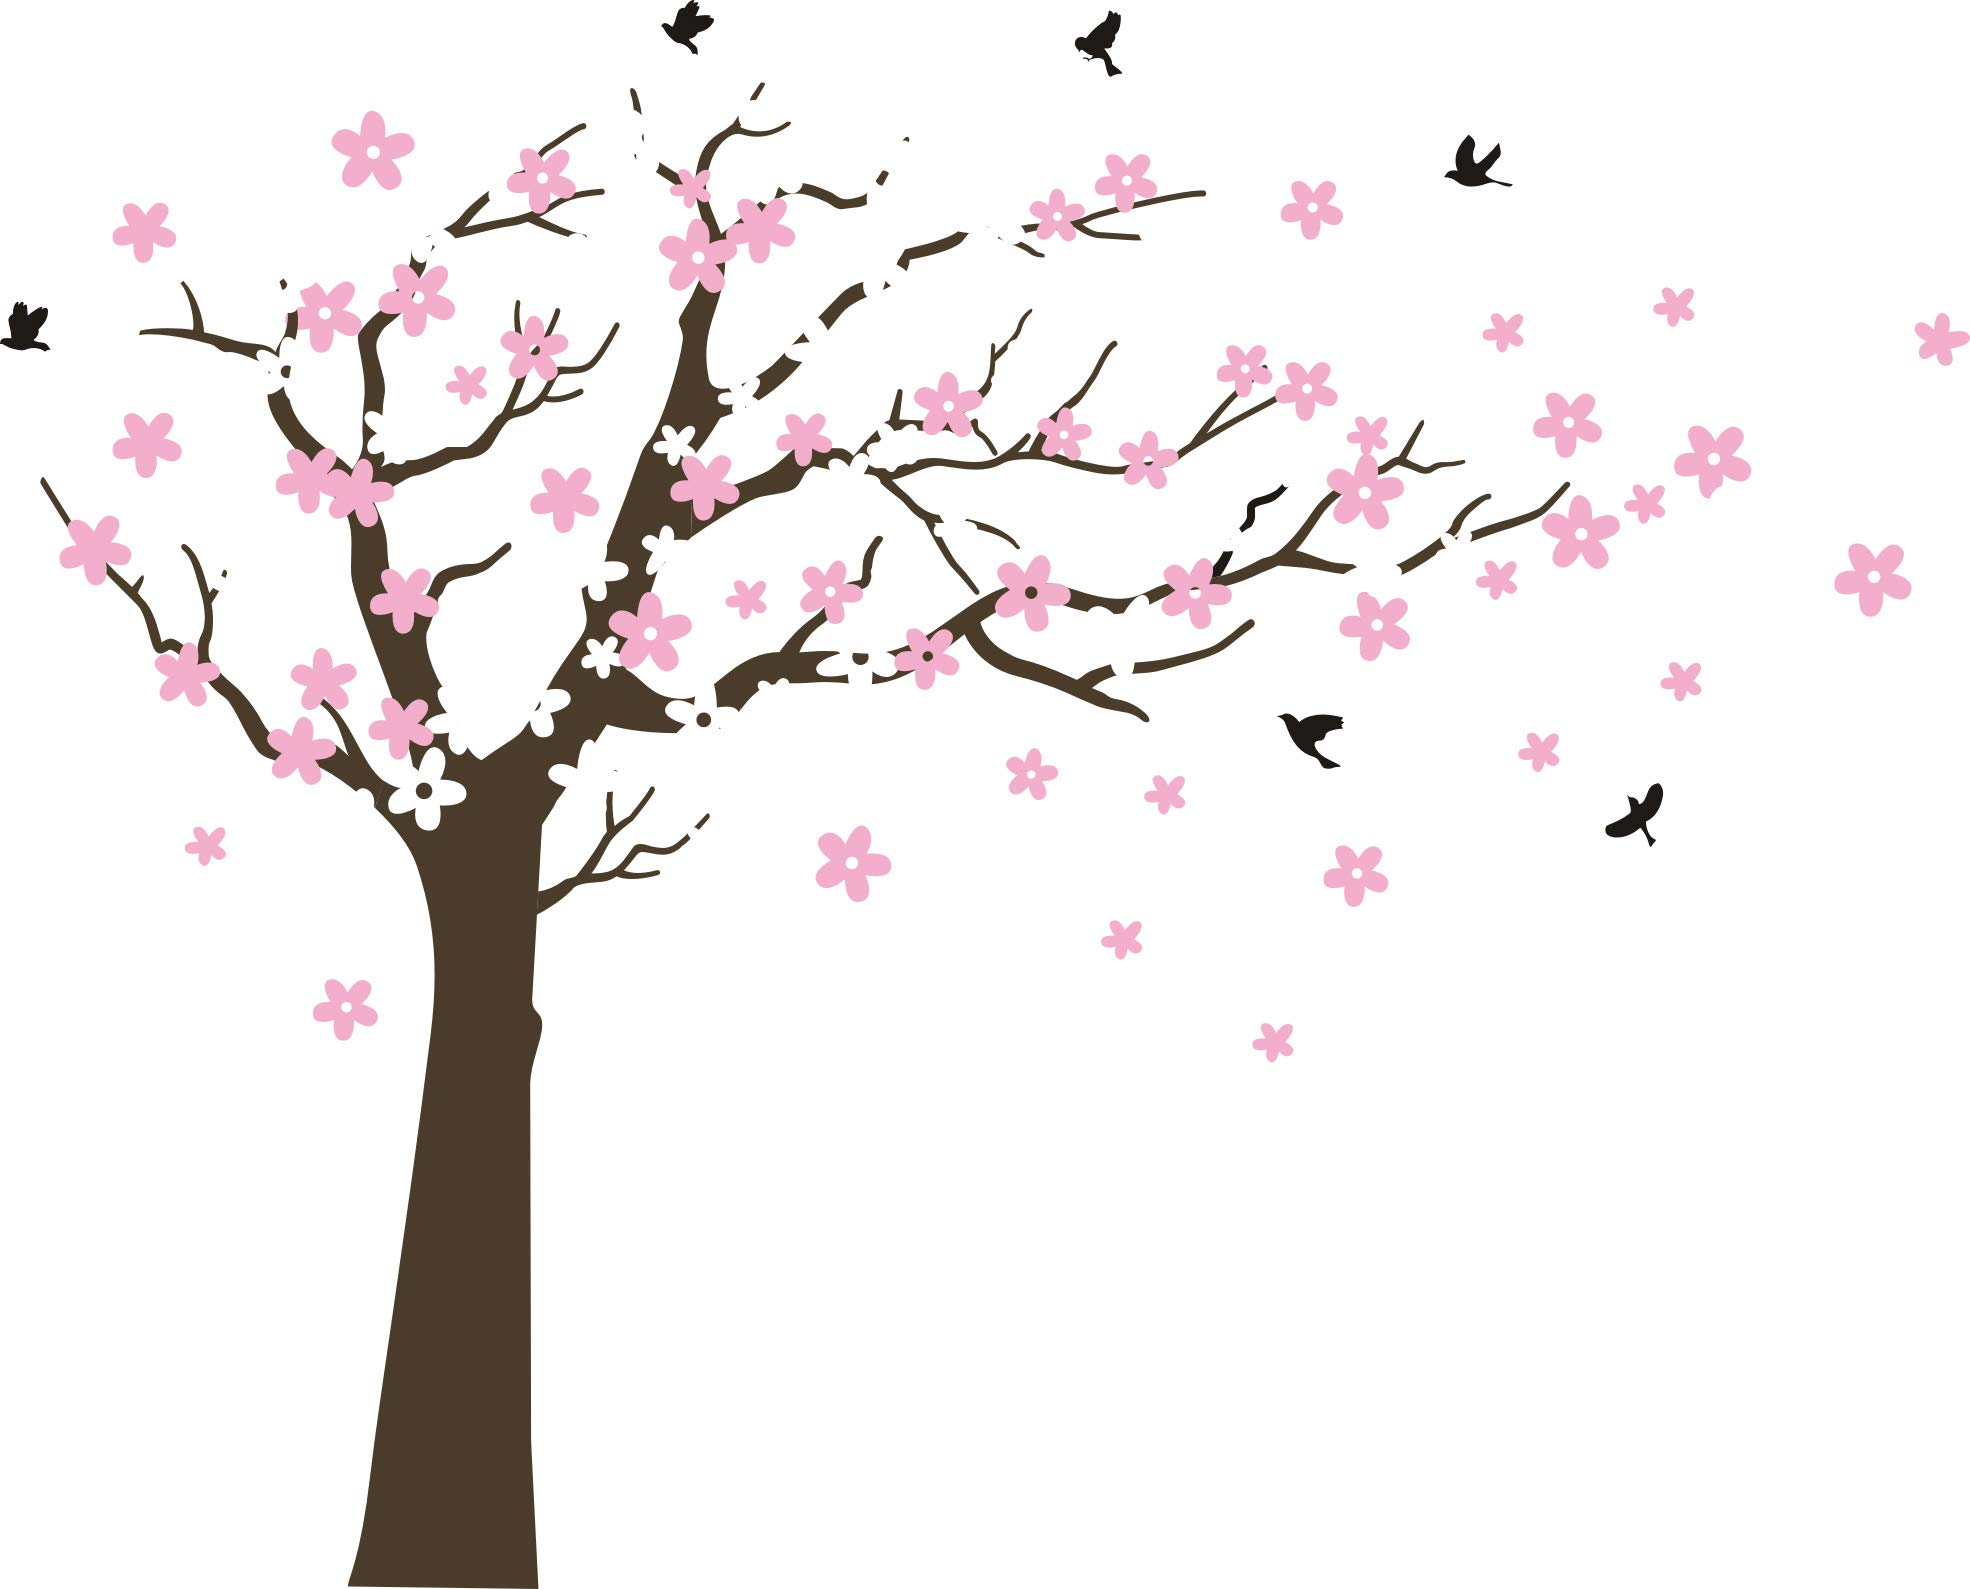 MAFENT Large Cherry Blossom Tree Blowing in The Wind Tree Wall Decals Wall Sticker Vinyl Wall Art Kids Rooms Teen Girls Boys Wallpaper Wall Stickers Room Decor (Dark Brown Tree,White and Pink Flower) by MAFENT